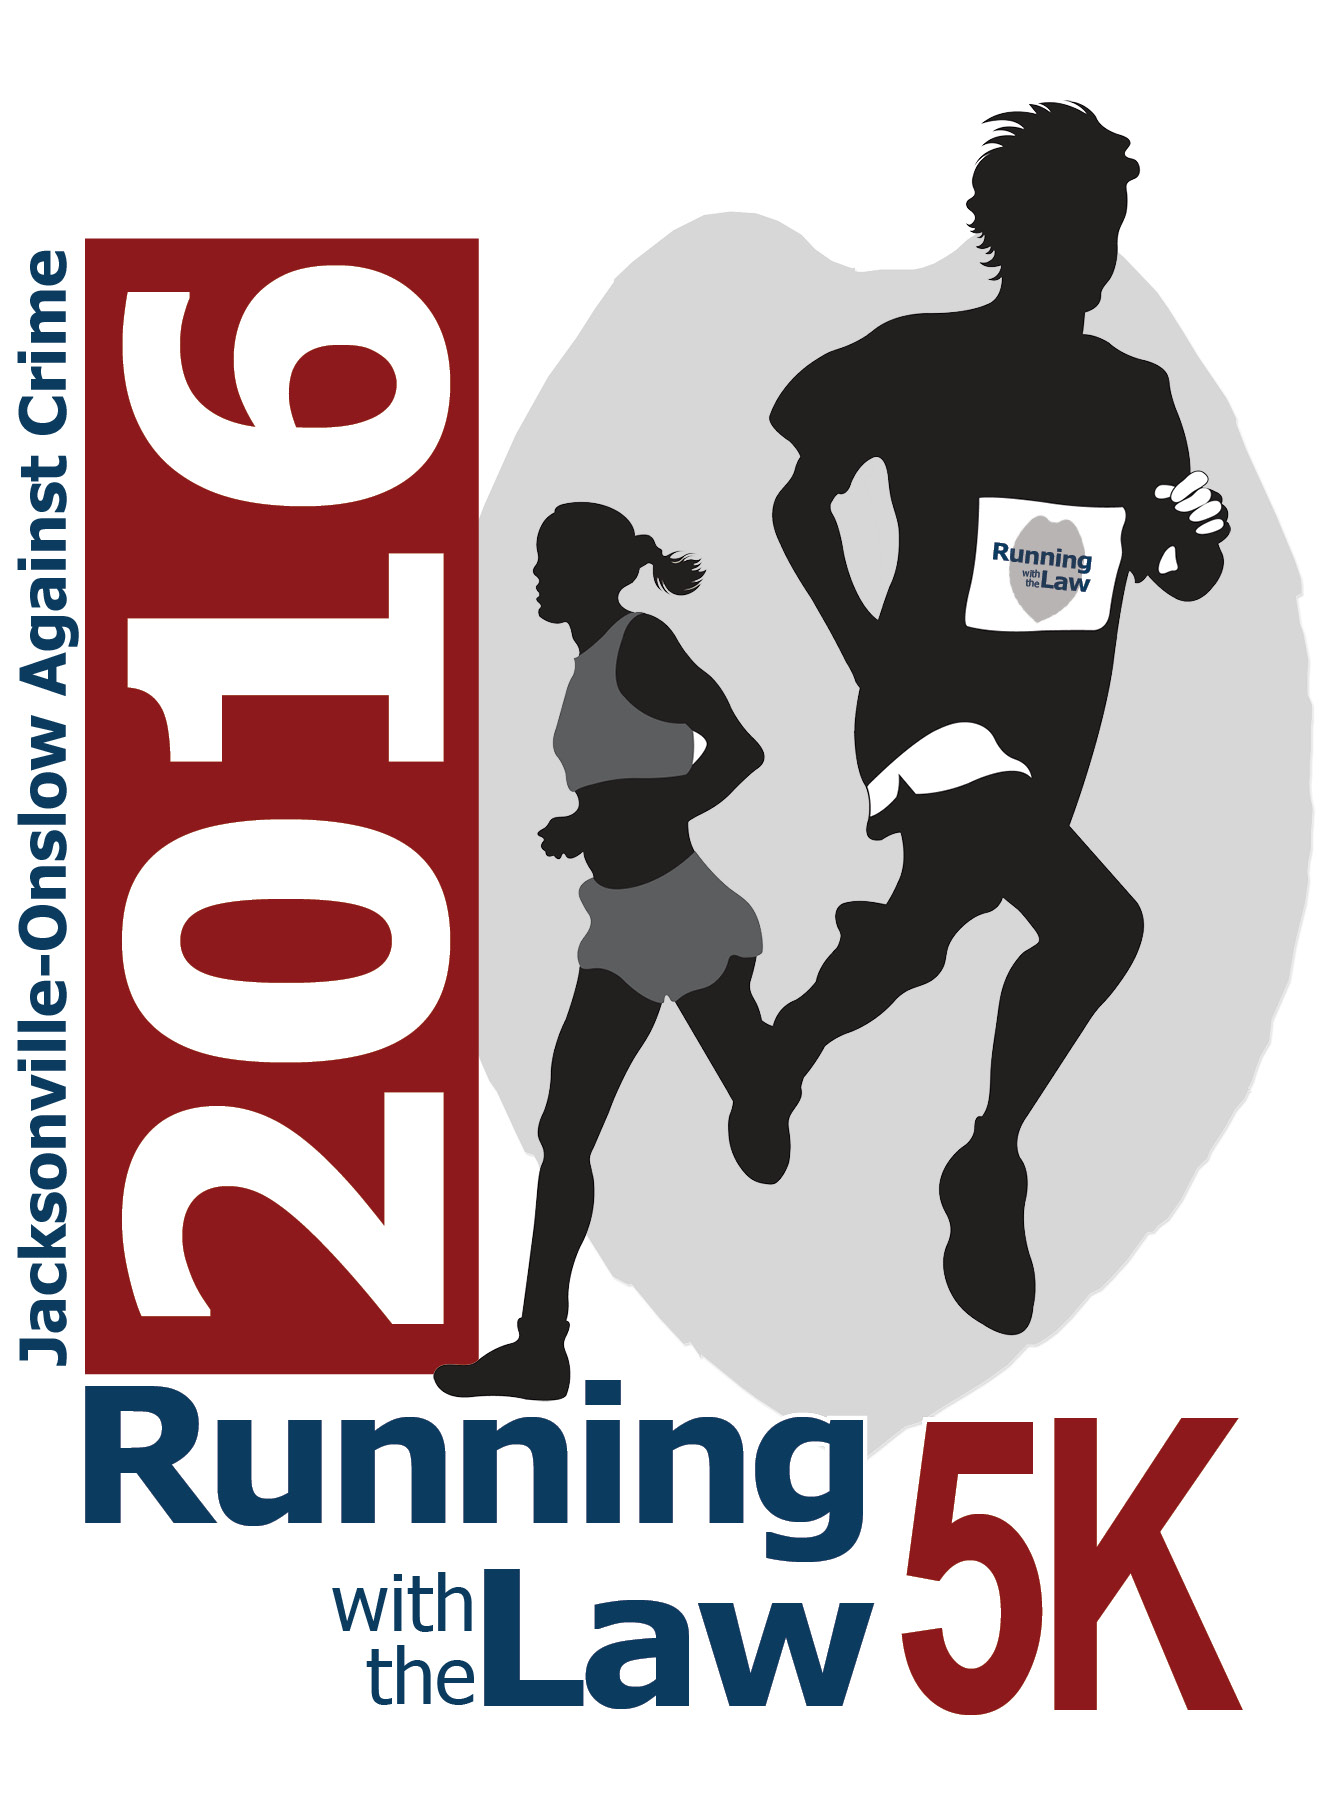 Running with the Law 2016 logo